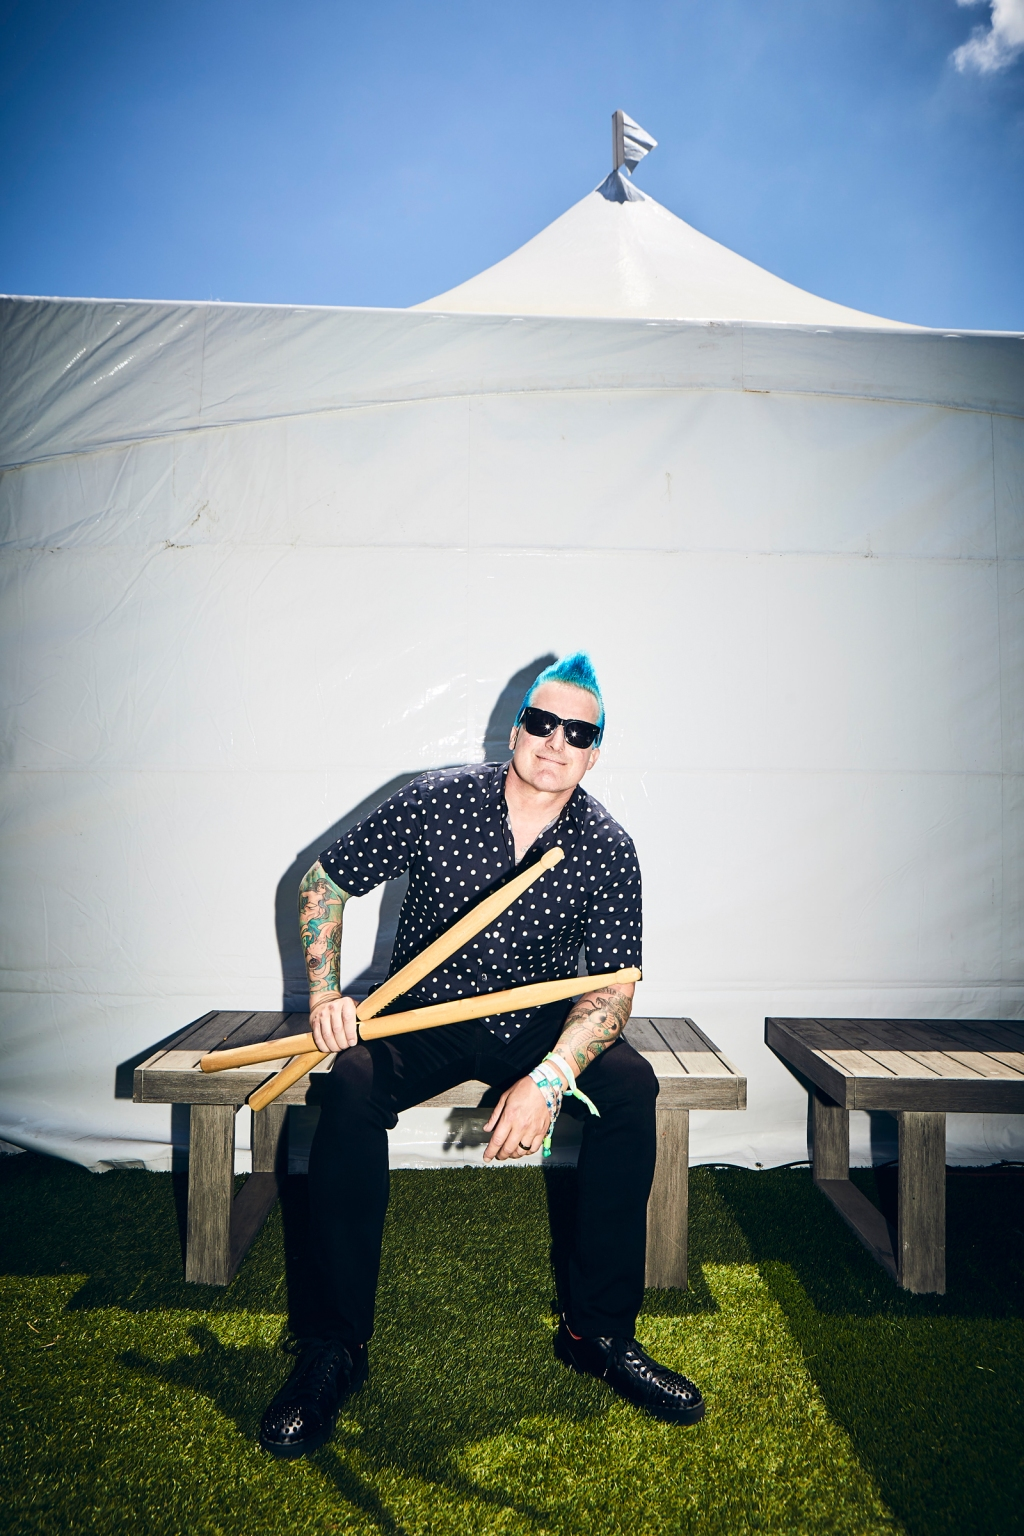 Tre Cool backstage at BottleRock in Napa Valley, CA on May 25th, 2019.